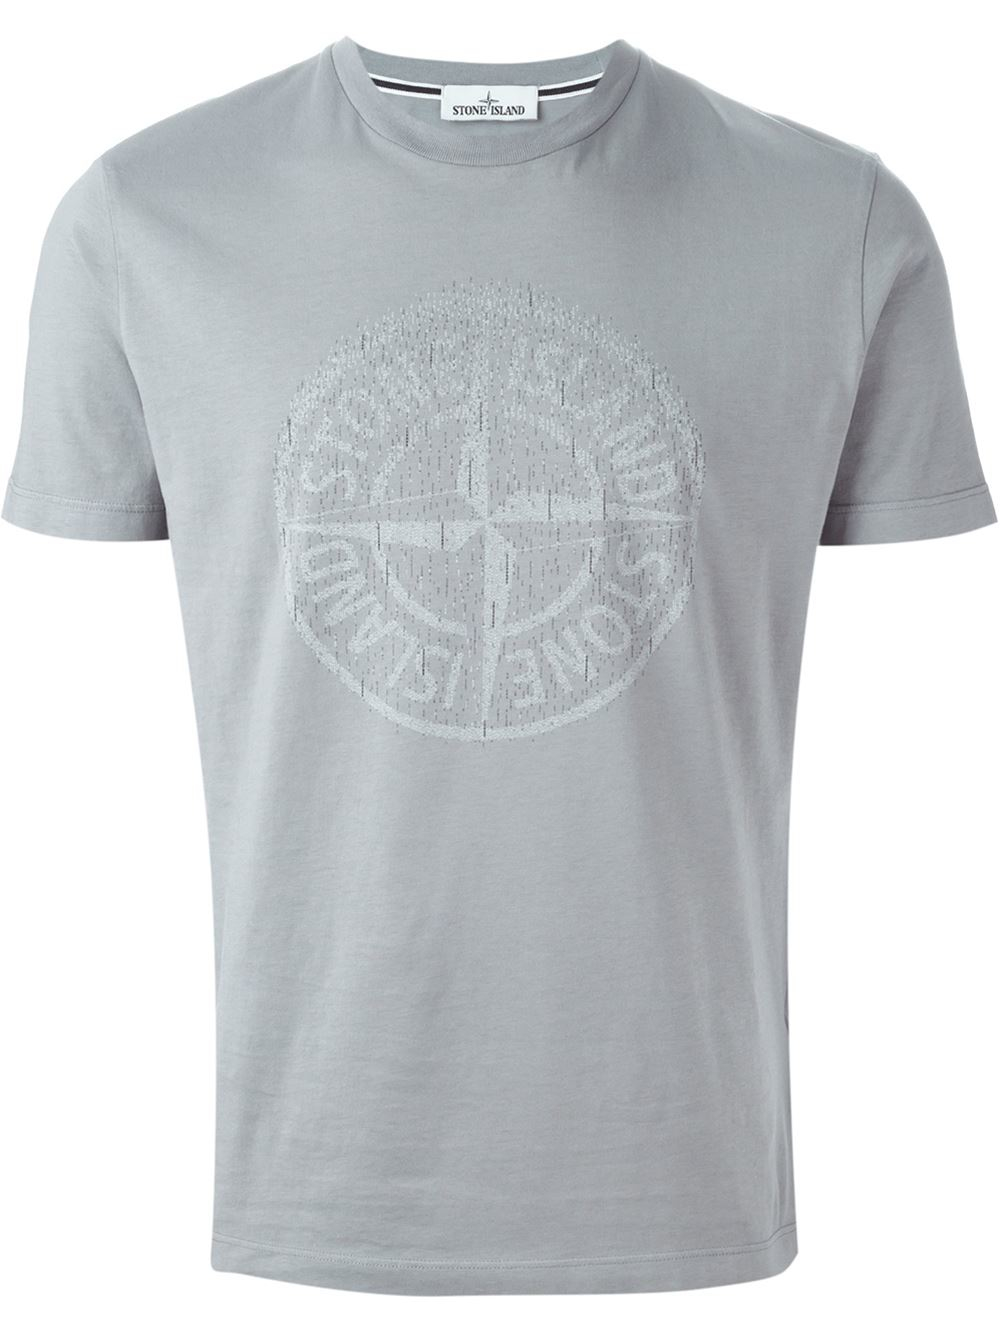 Stone island Logo Print T-shirt in Gray for Men (GREY) - Lyst